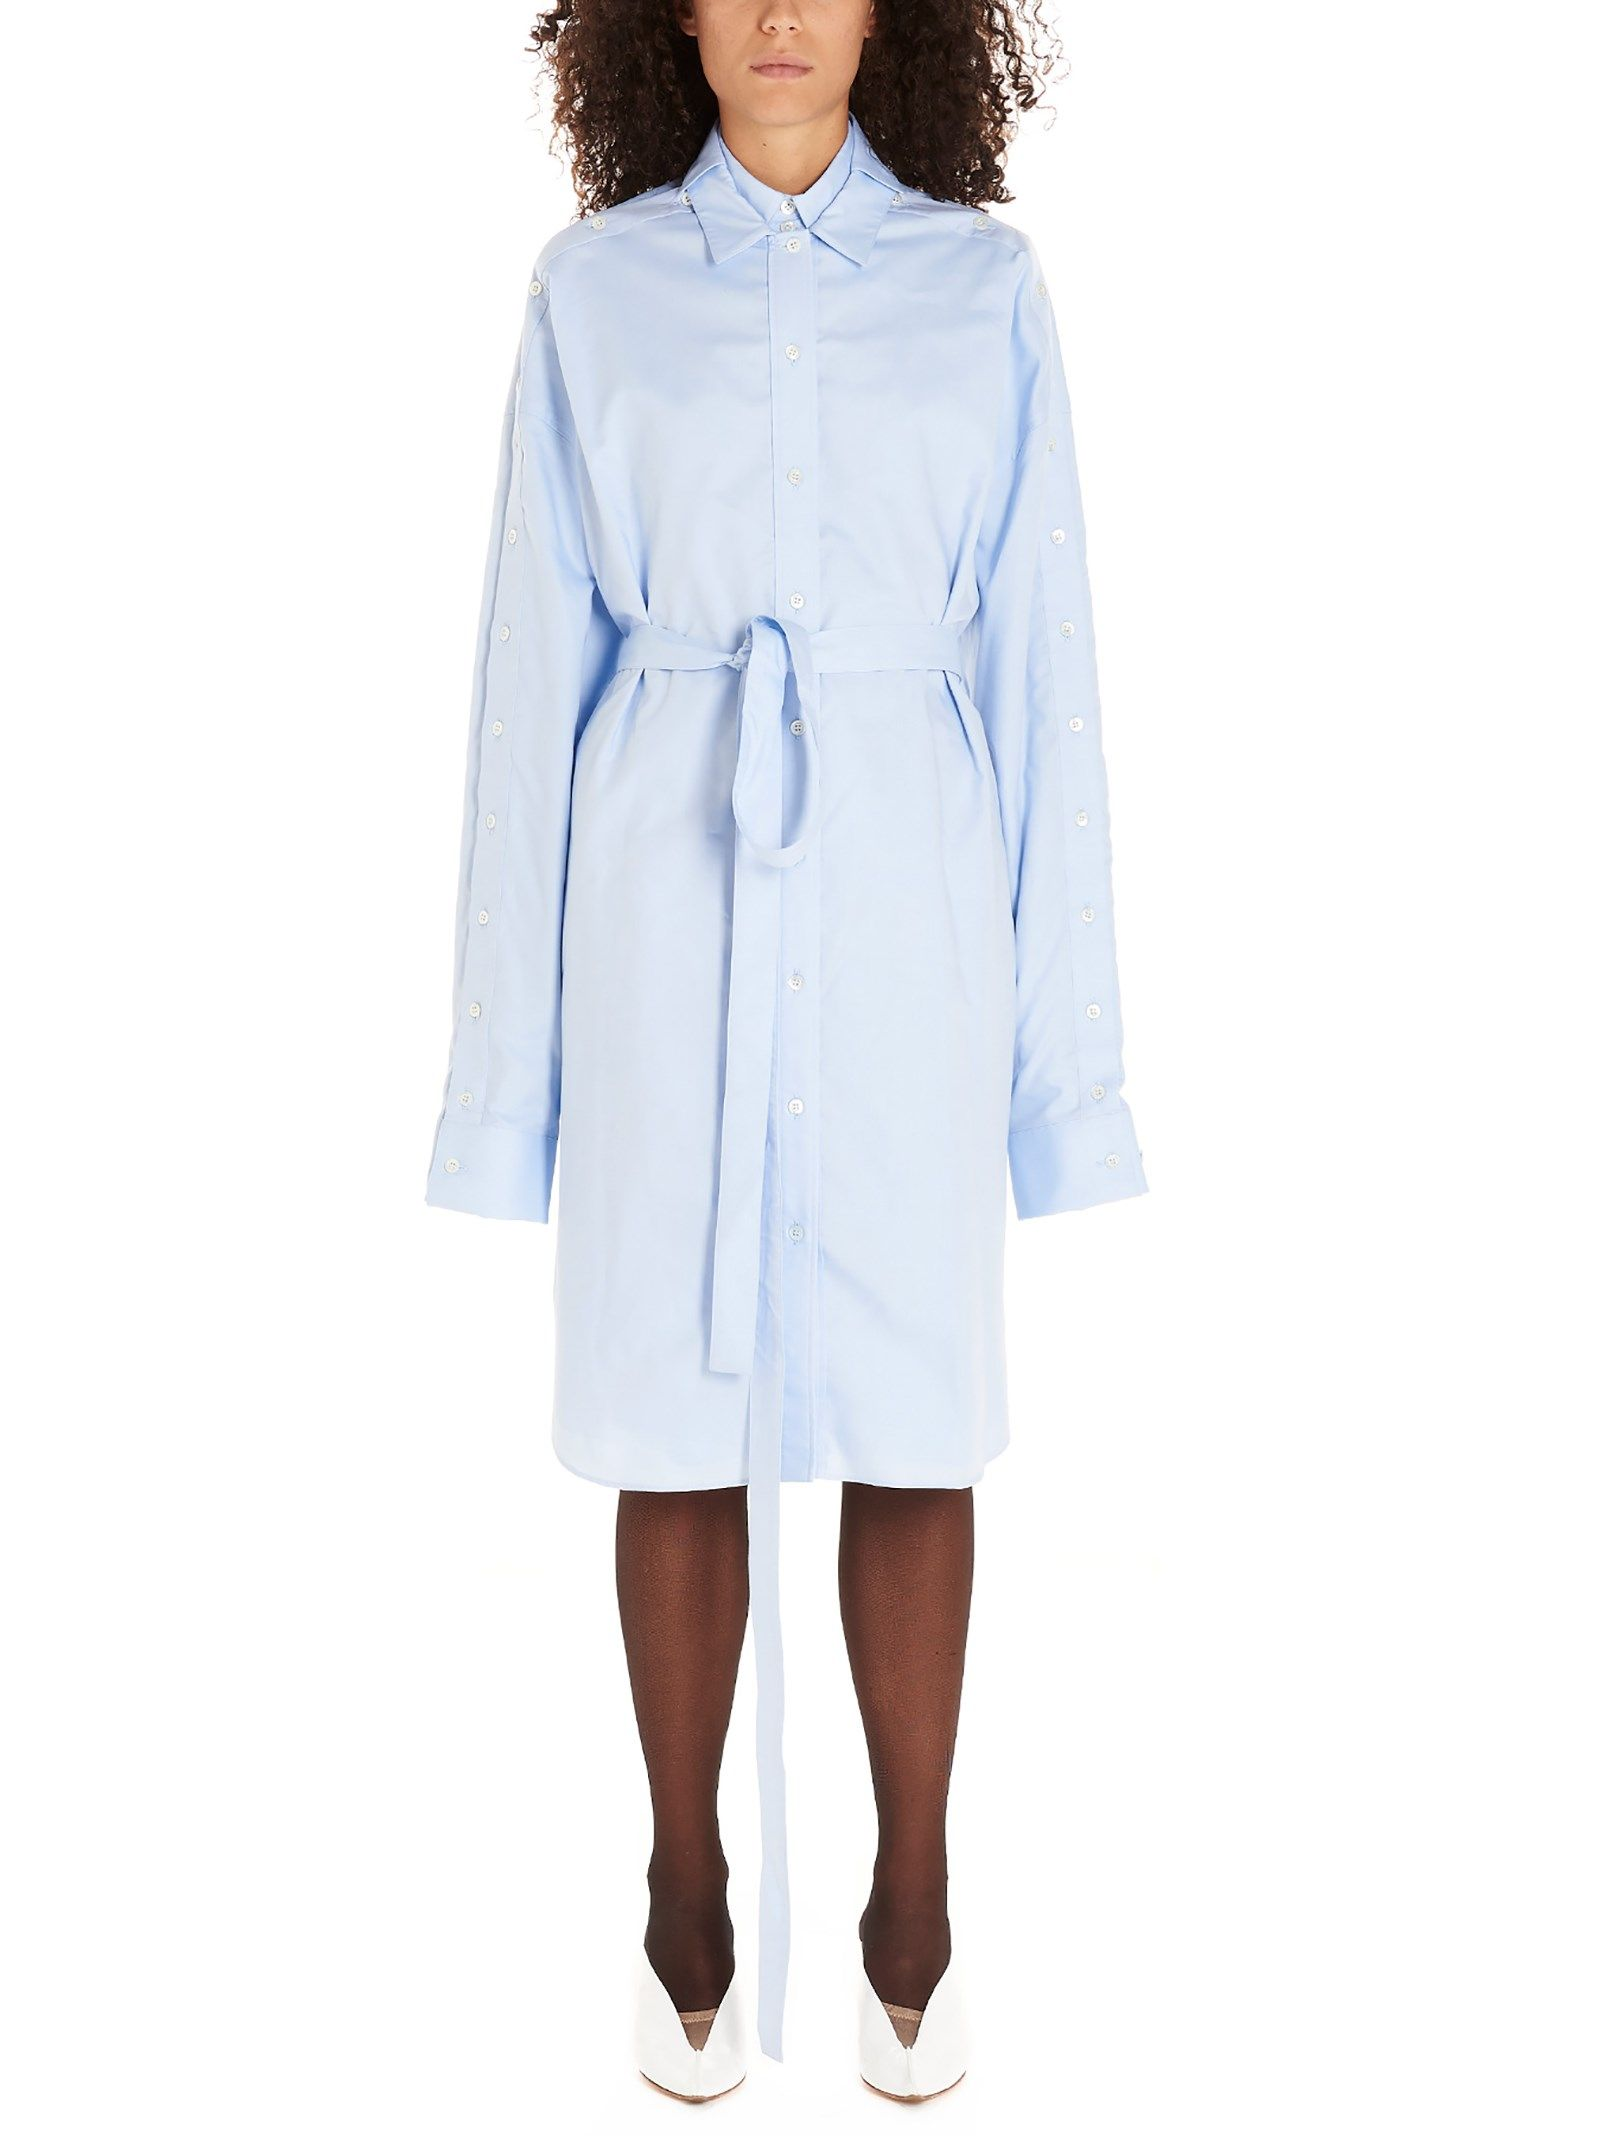 Y/project LIGHT BLUE COTTON DRESS